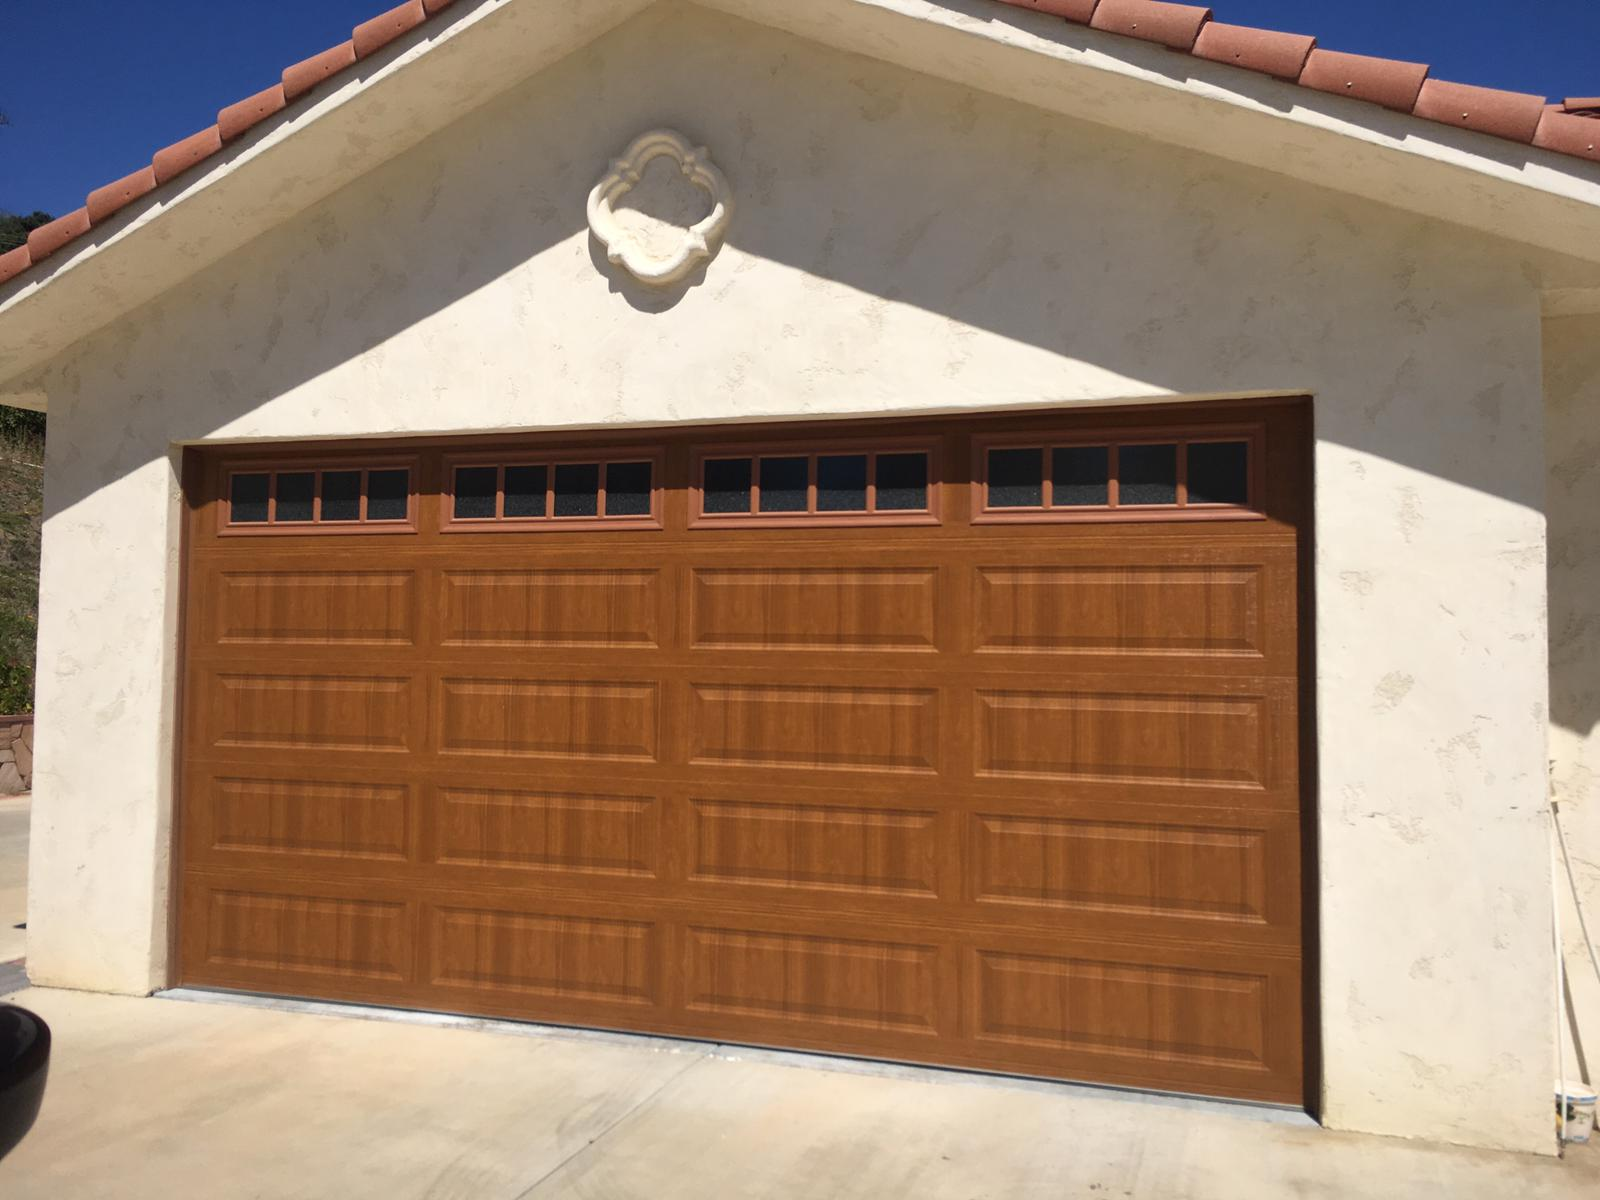 Garage Door Repair Millcreek, Lehi